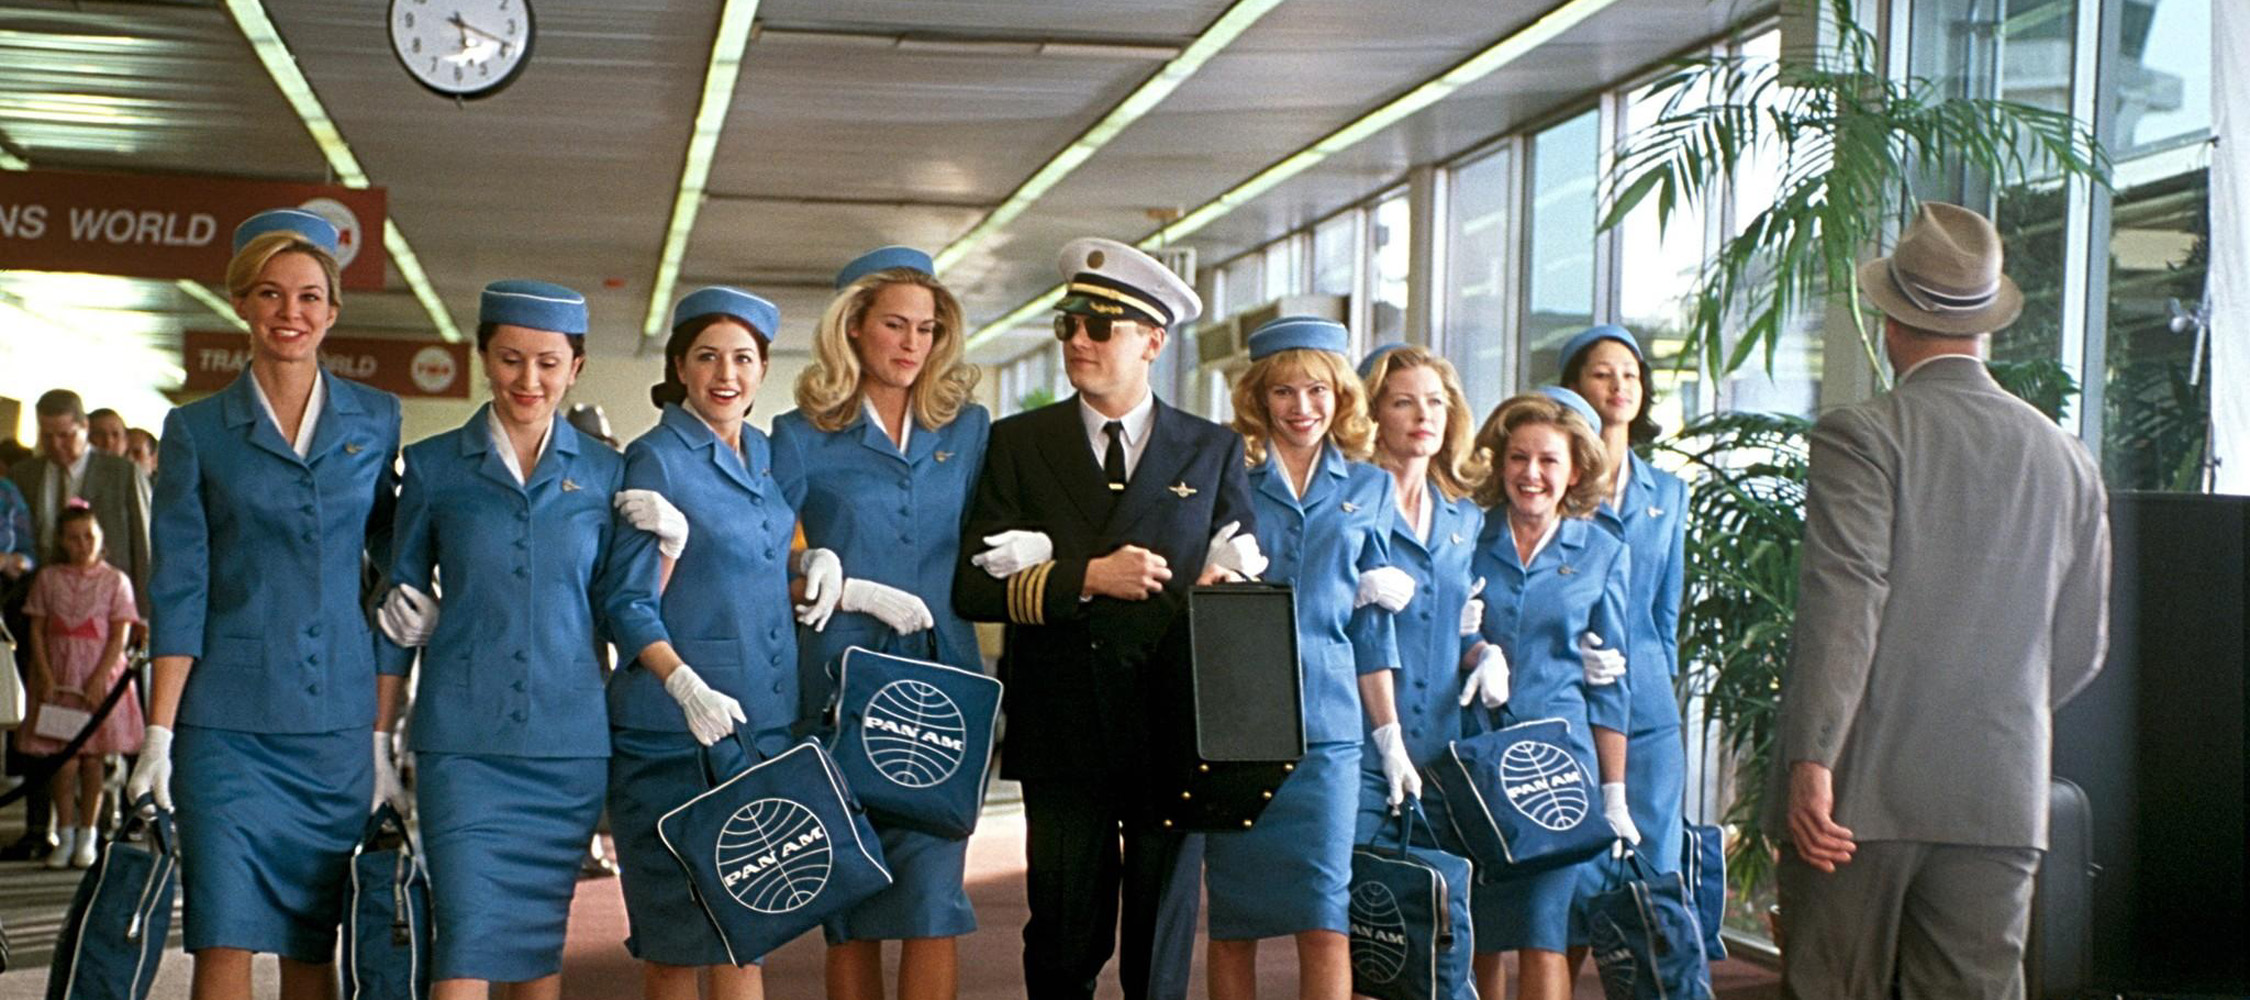 Resultado de imagem para catch me if you can movie